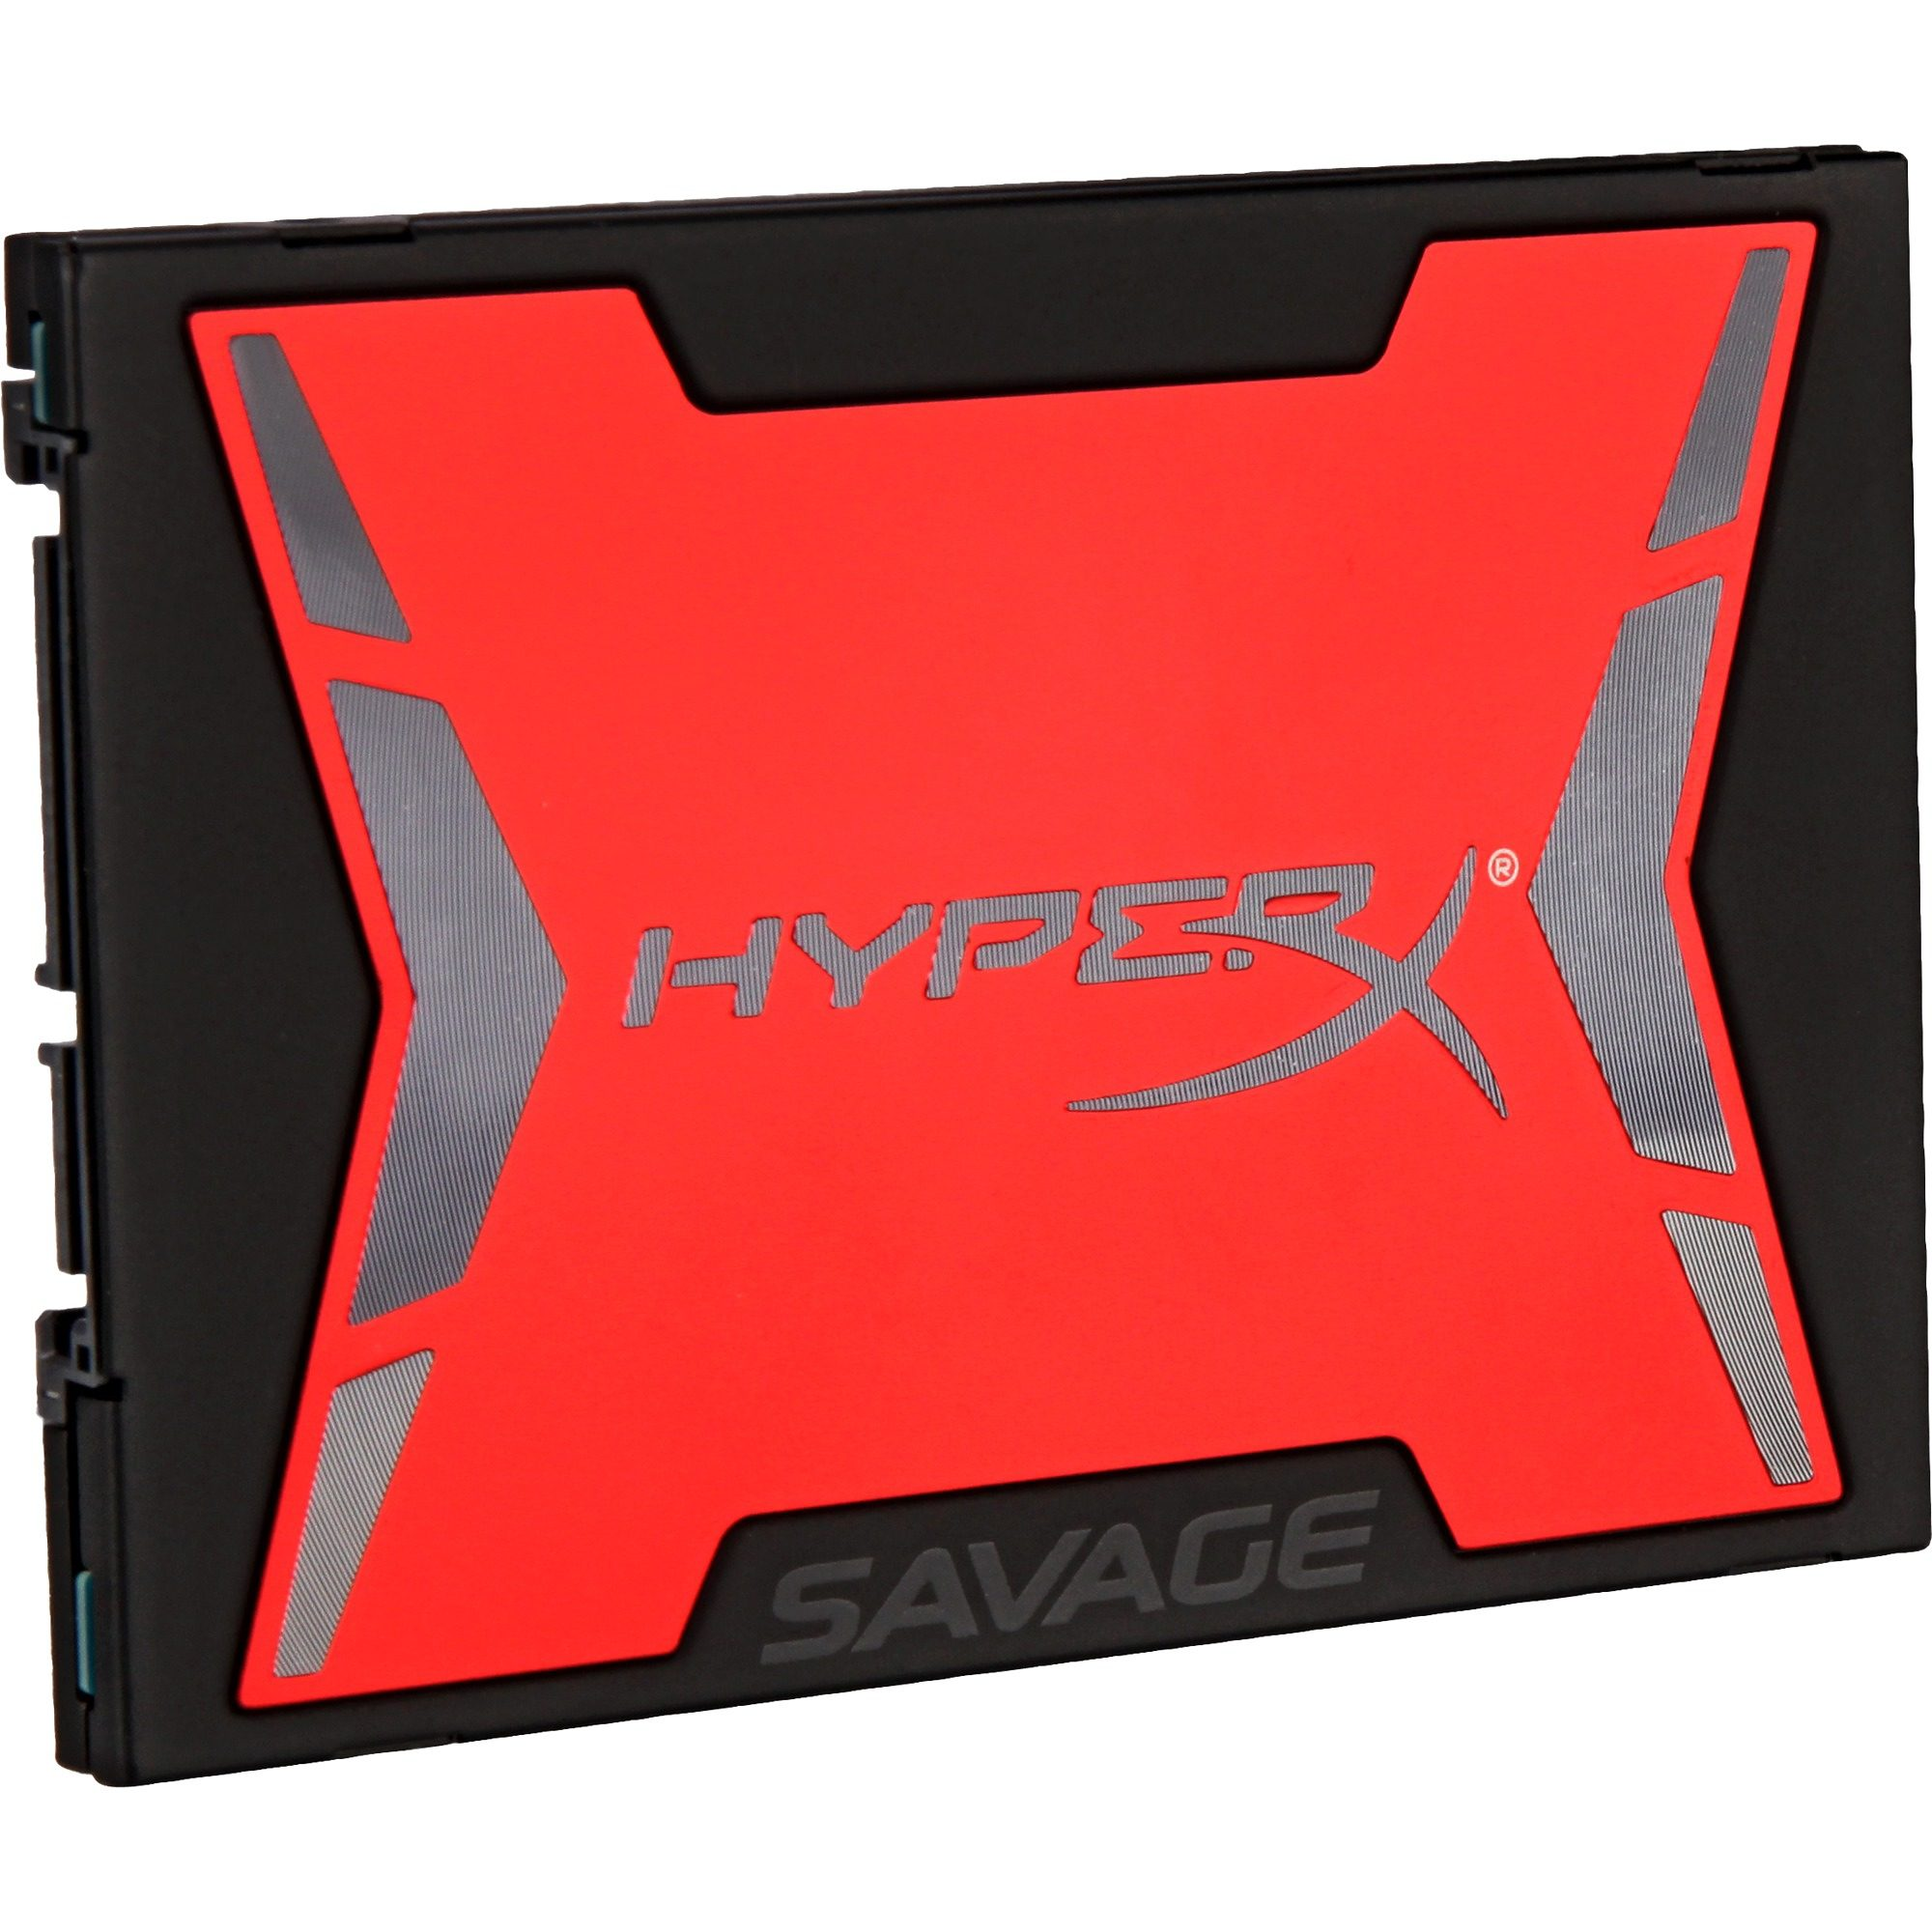 Kingston HyperX Solid State Drive »SHSS37A/120G 120 GB«